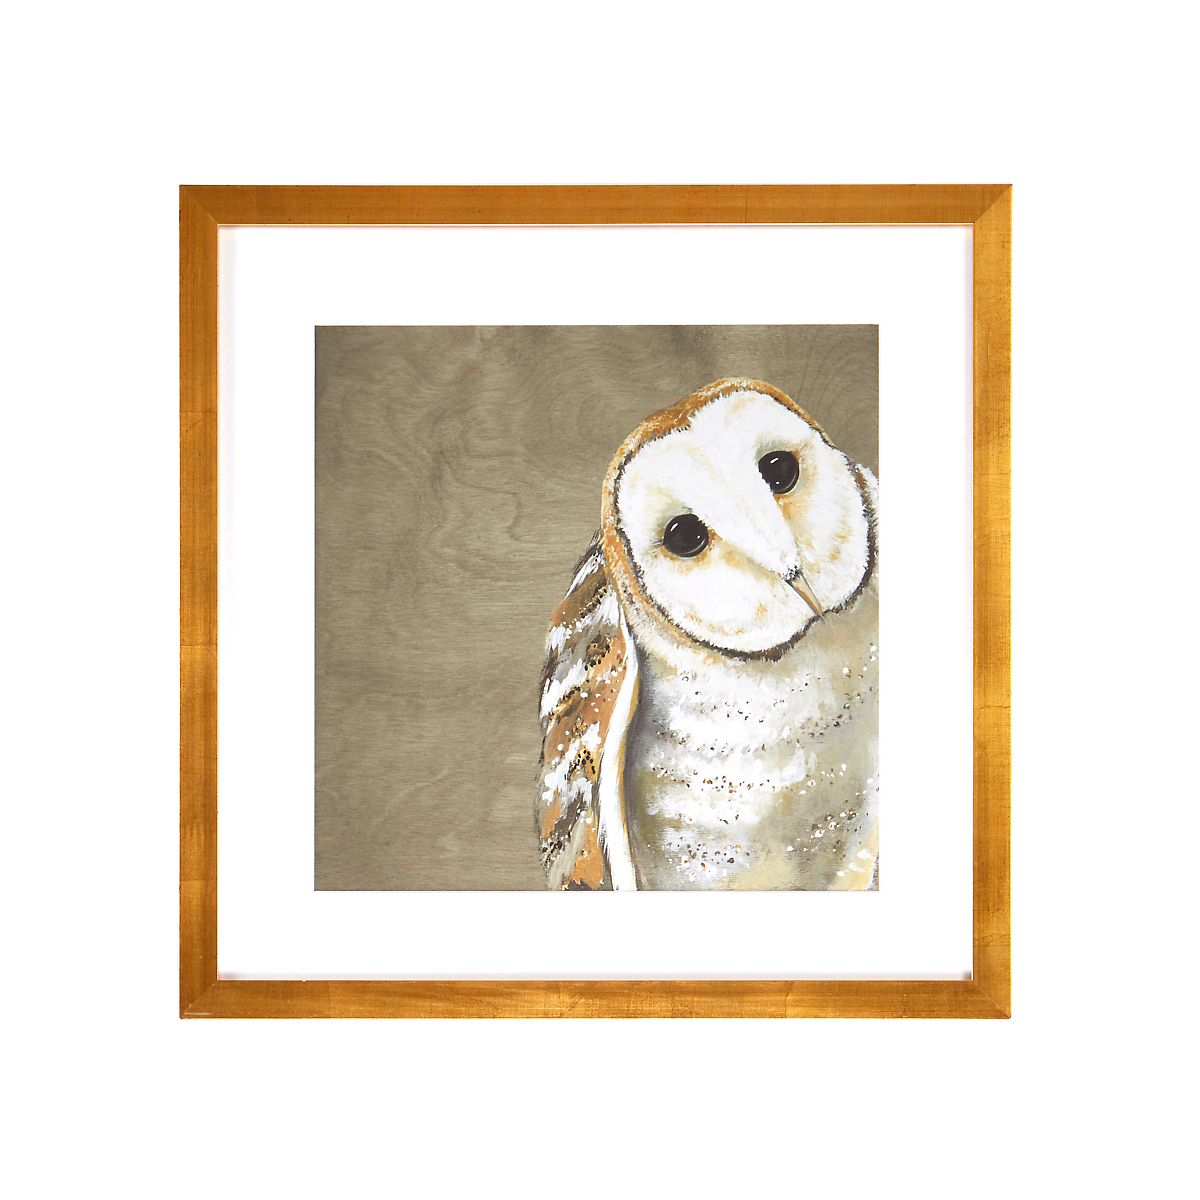 European Barn Owl Artwork